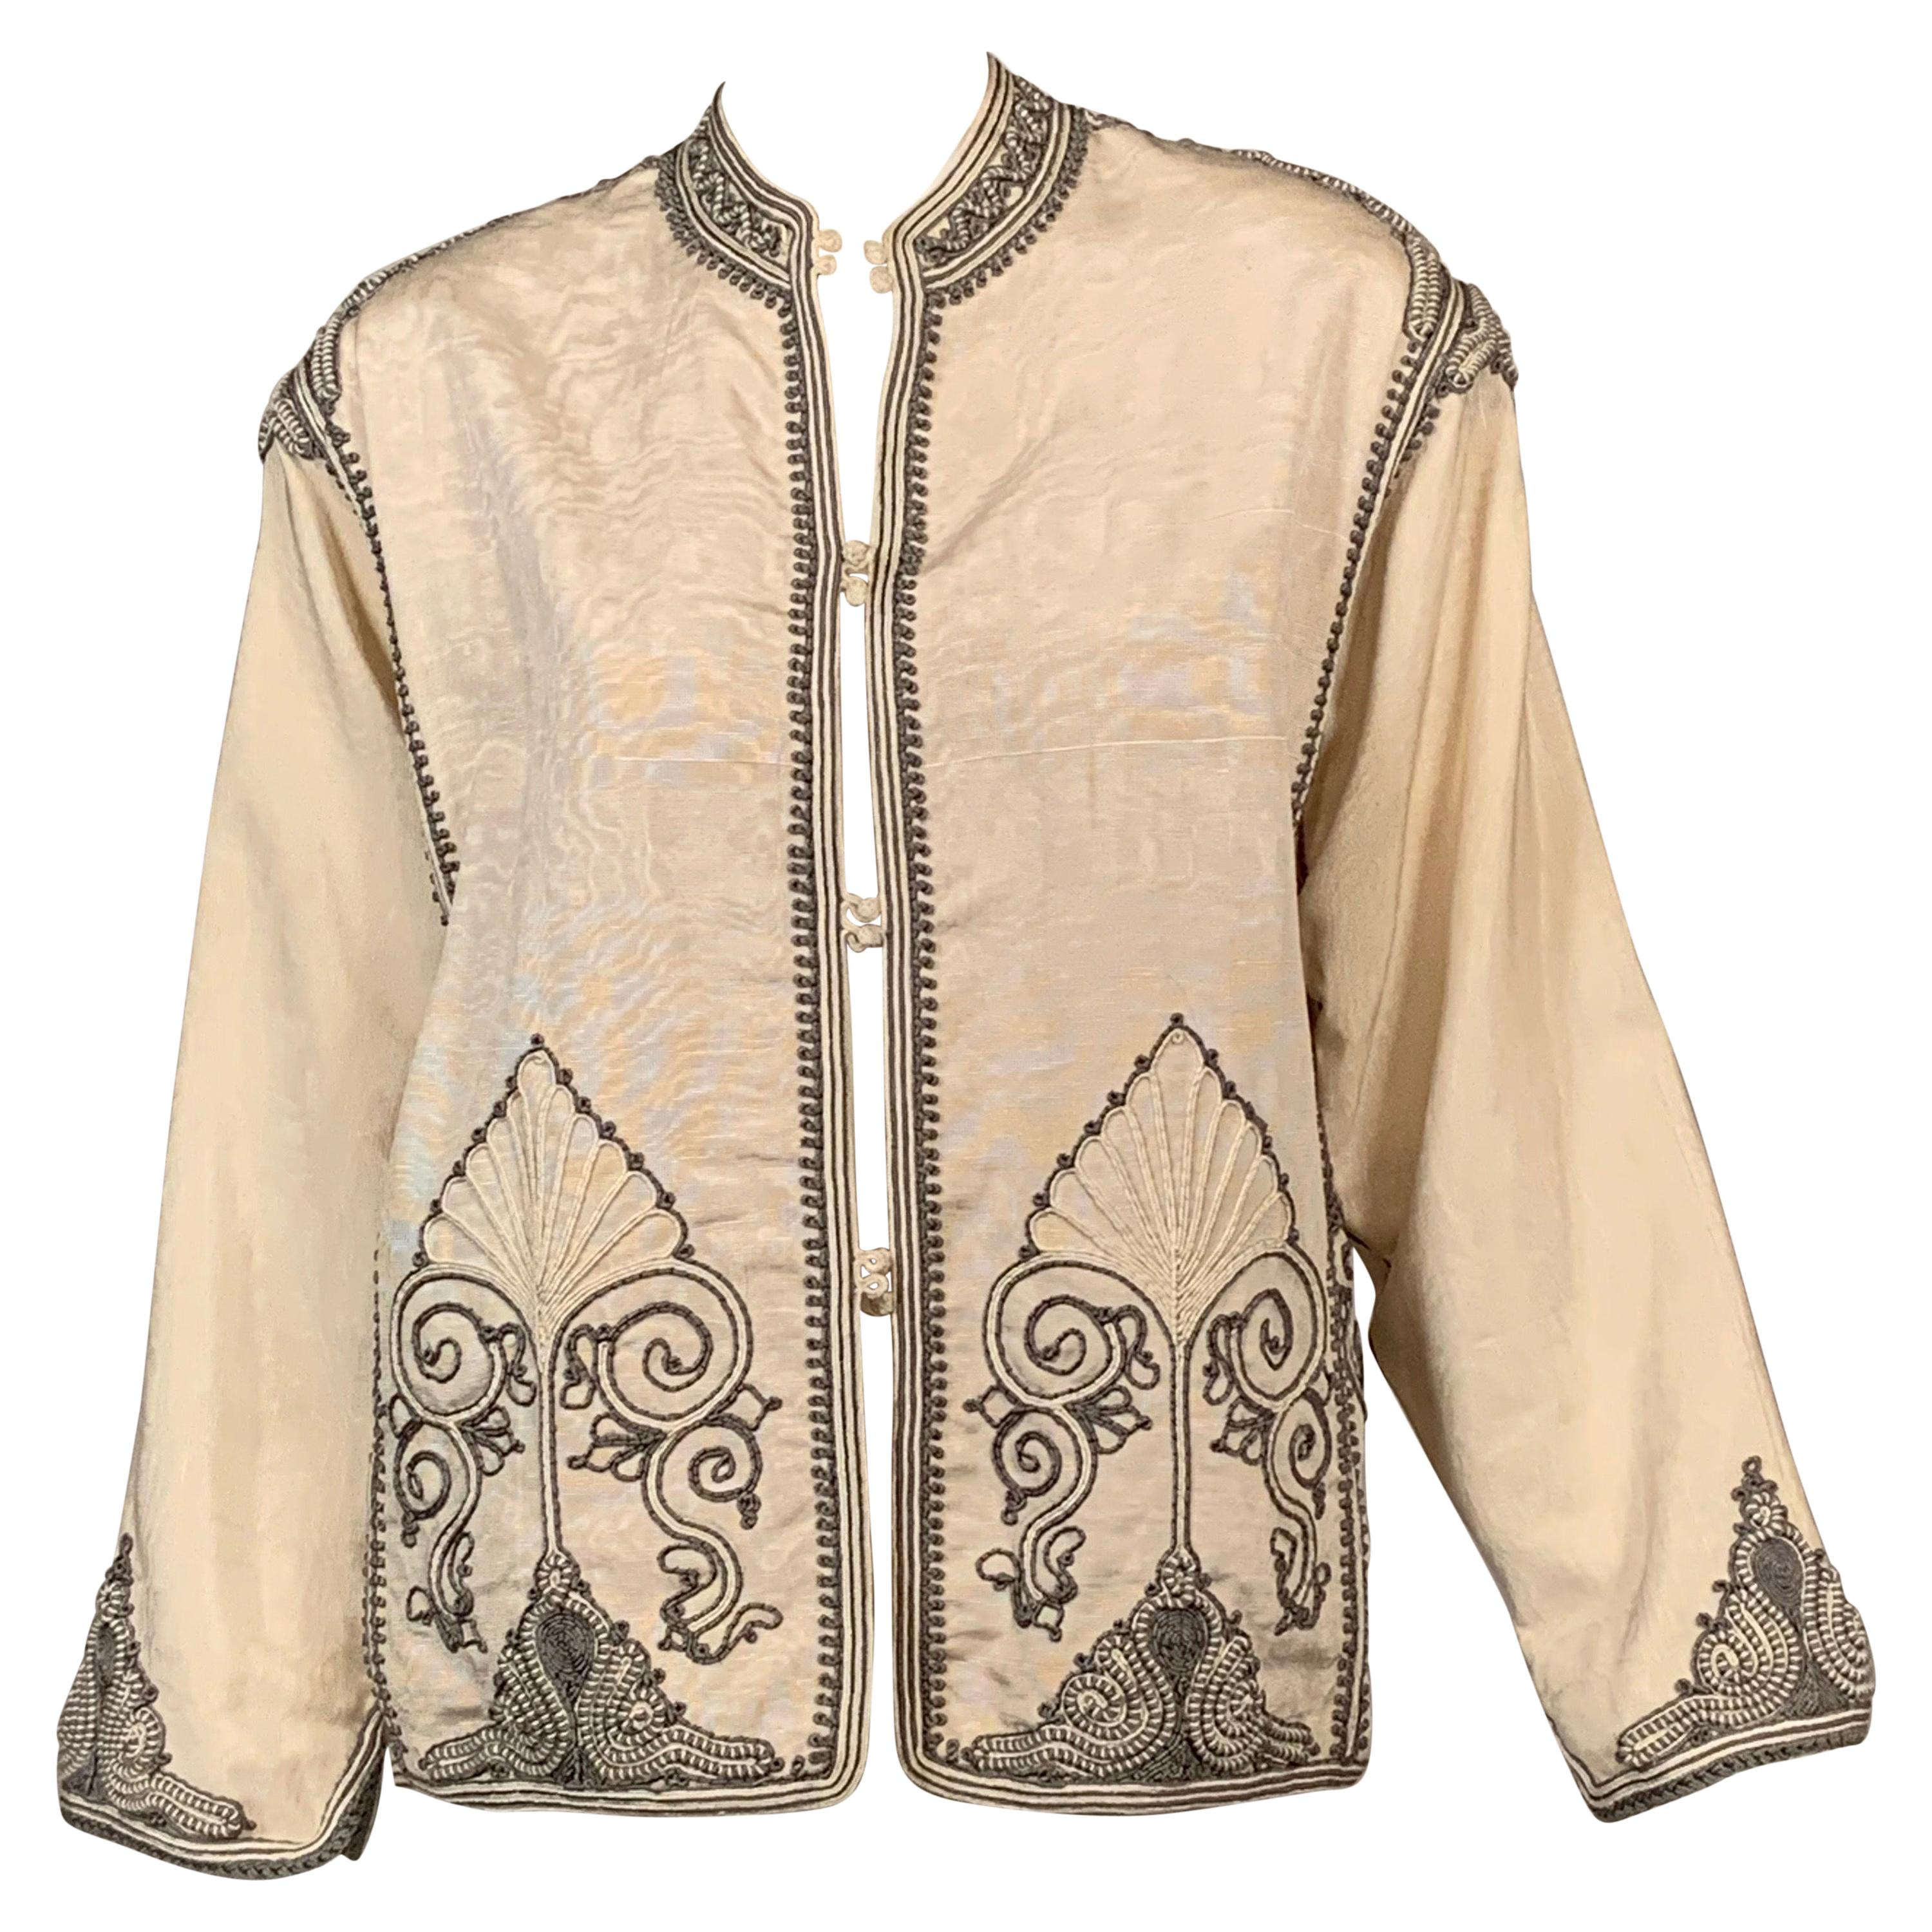 Moroccan Silk Jacket with Hand Sewn Charcoal Grey and Cream Soutache Braid Trim